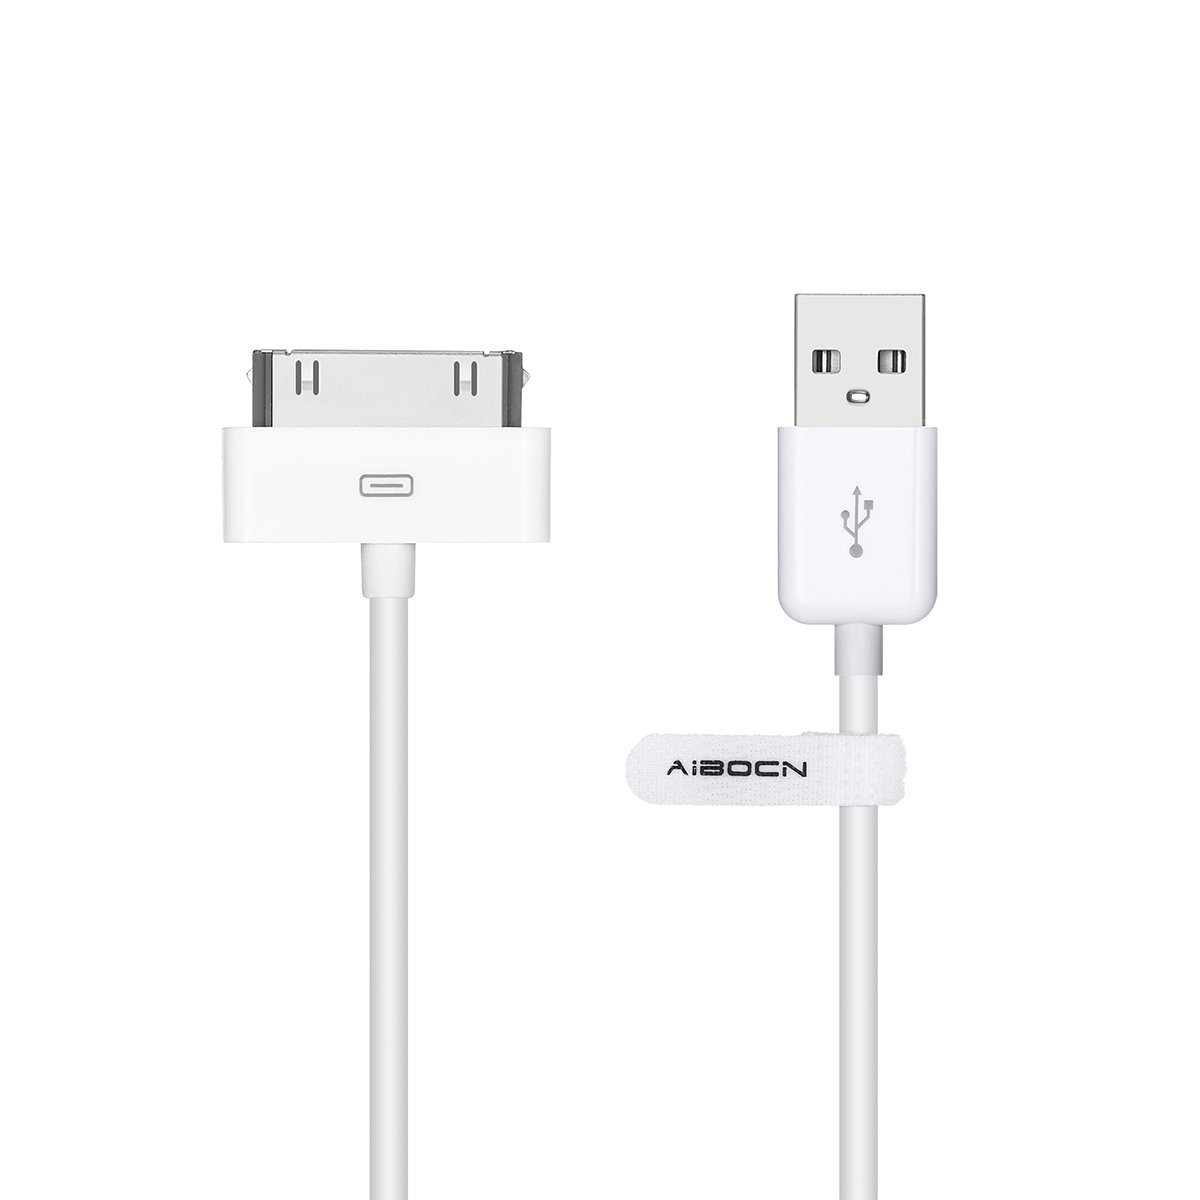 aibocn-mfi-certified-30-pin-sync-and-charge-dock-cable-for-iphone-4-4s-ipad-1-2-3-ipod-nanoipod-touch-white